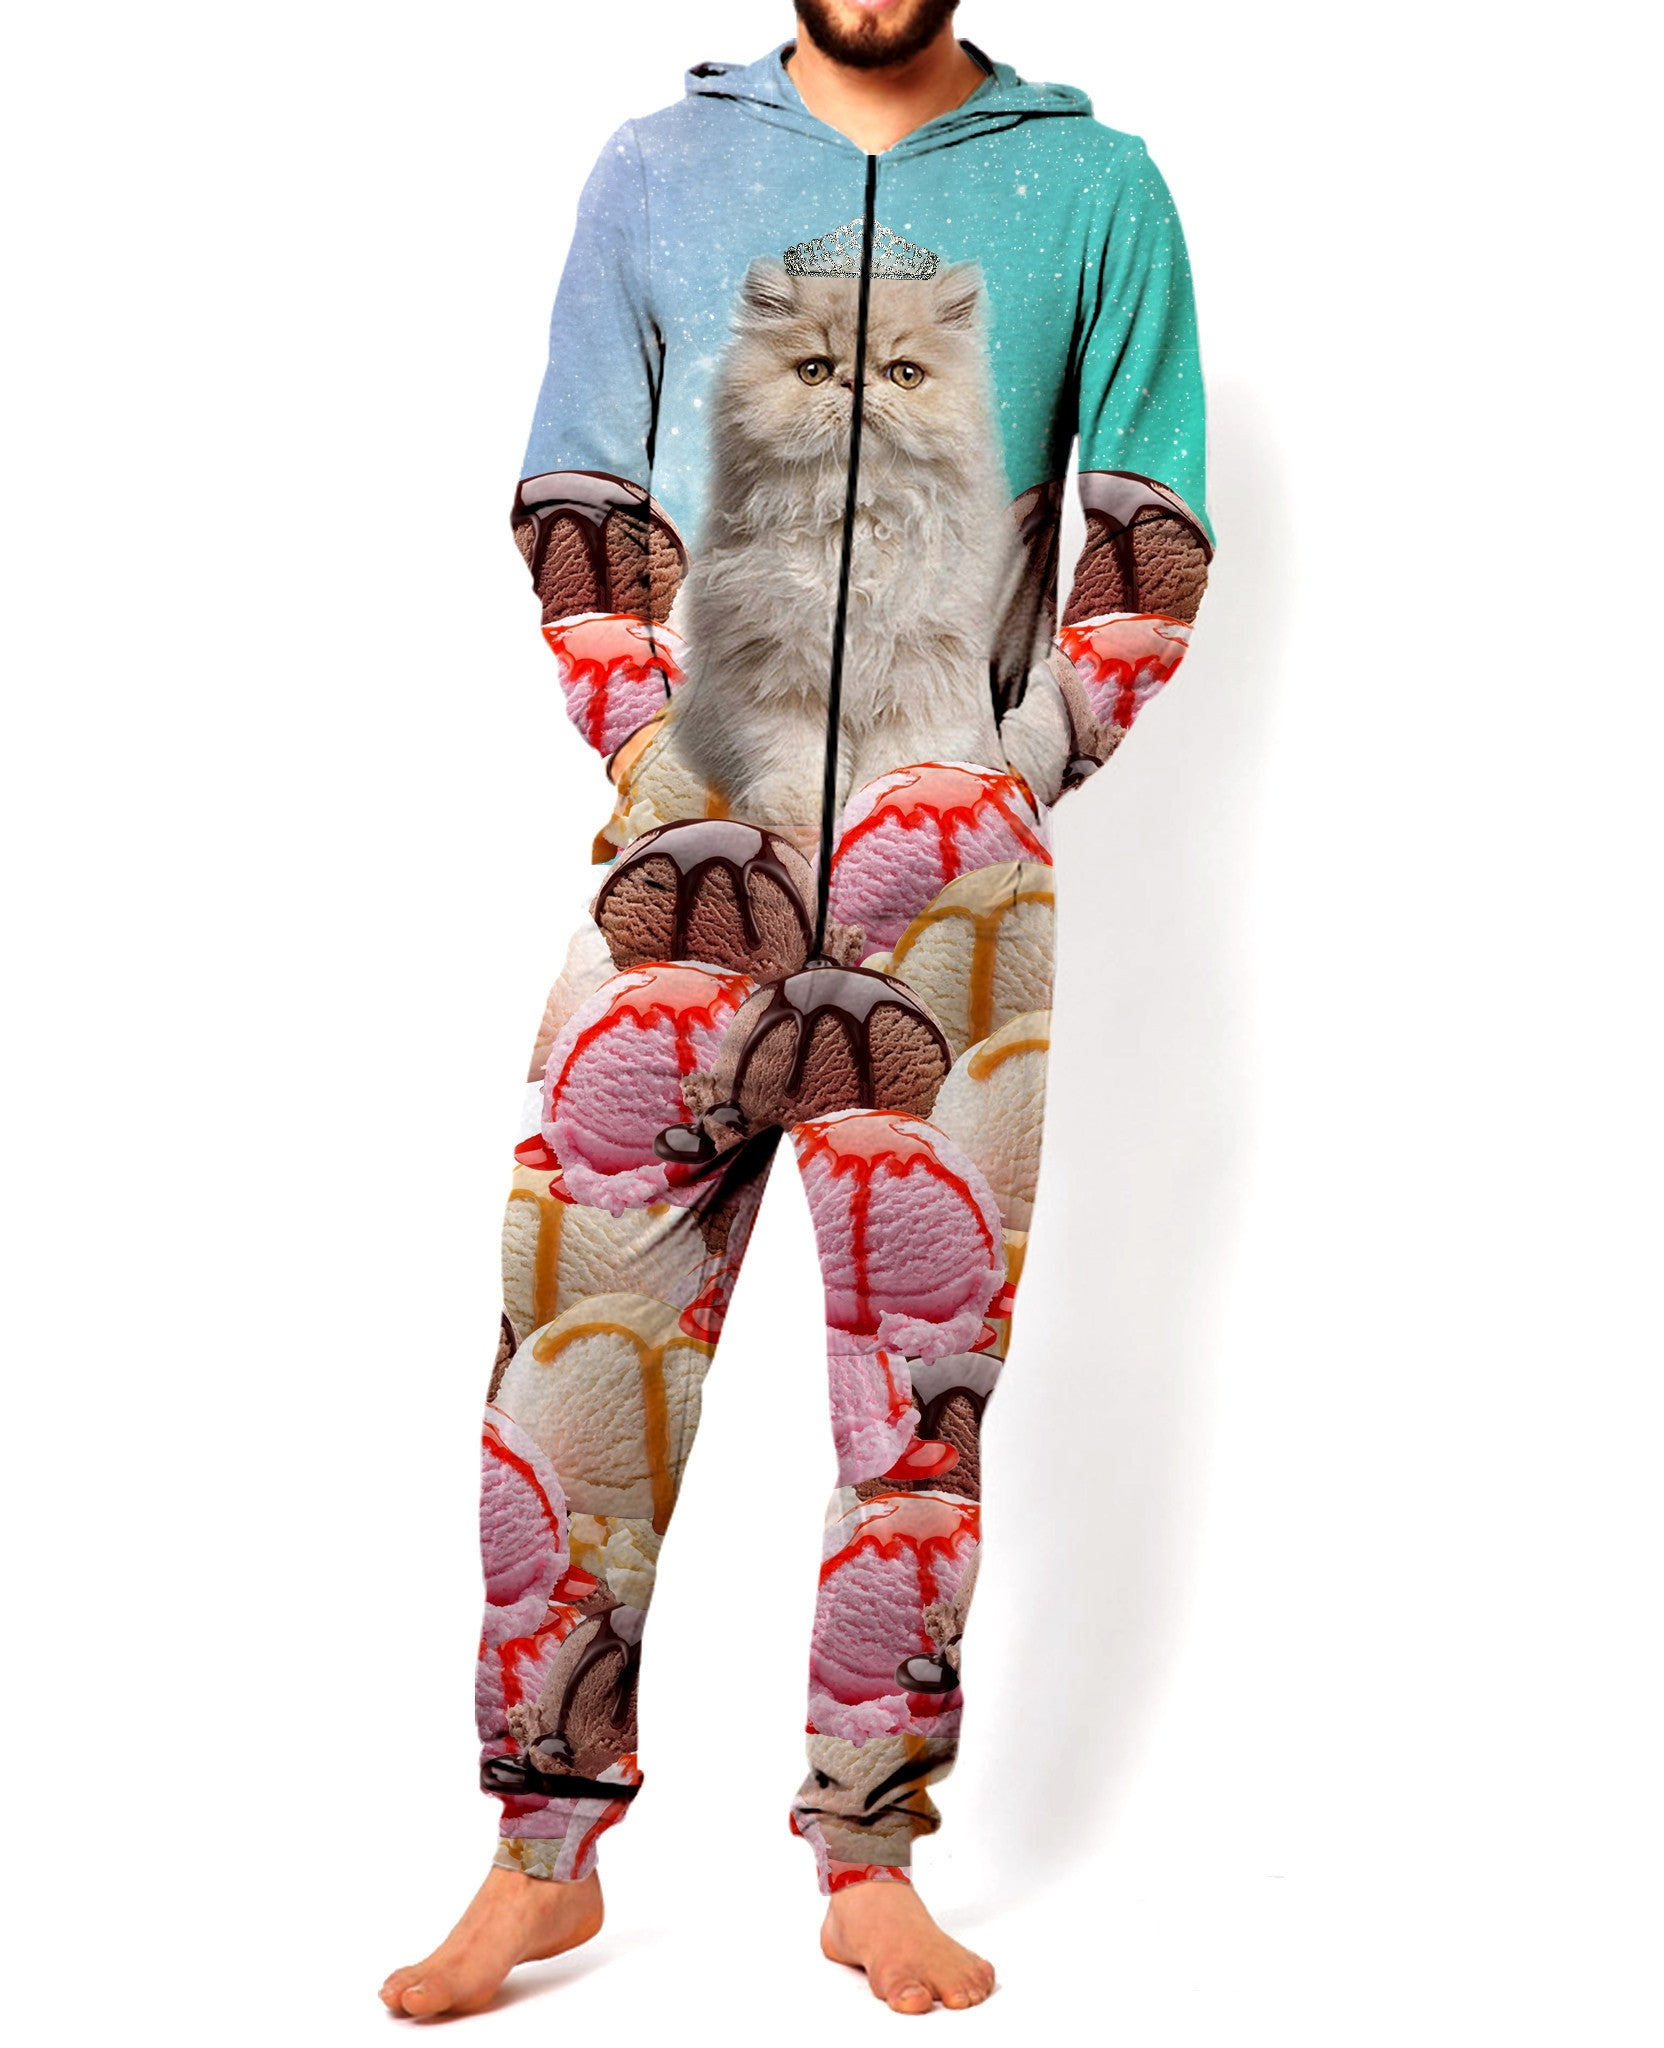 Princess Ice Cream Space Cat Onesie